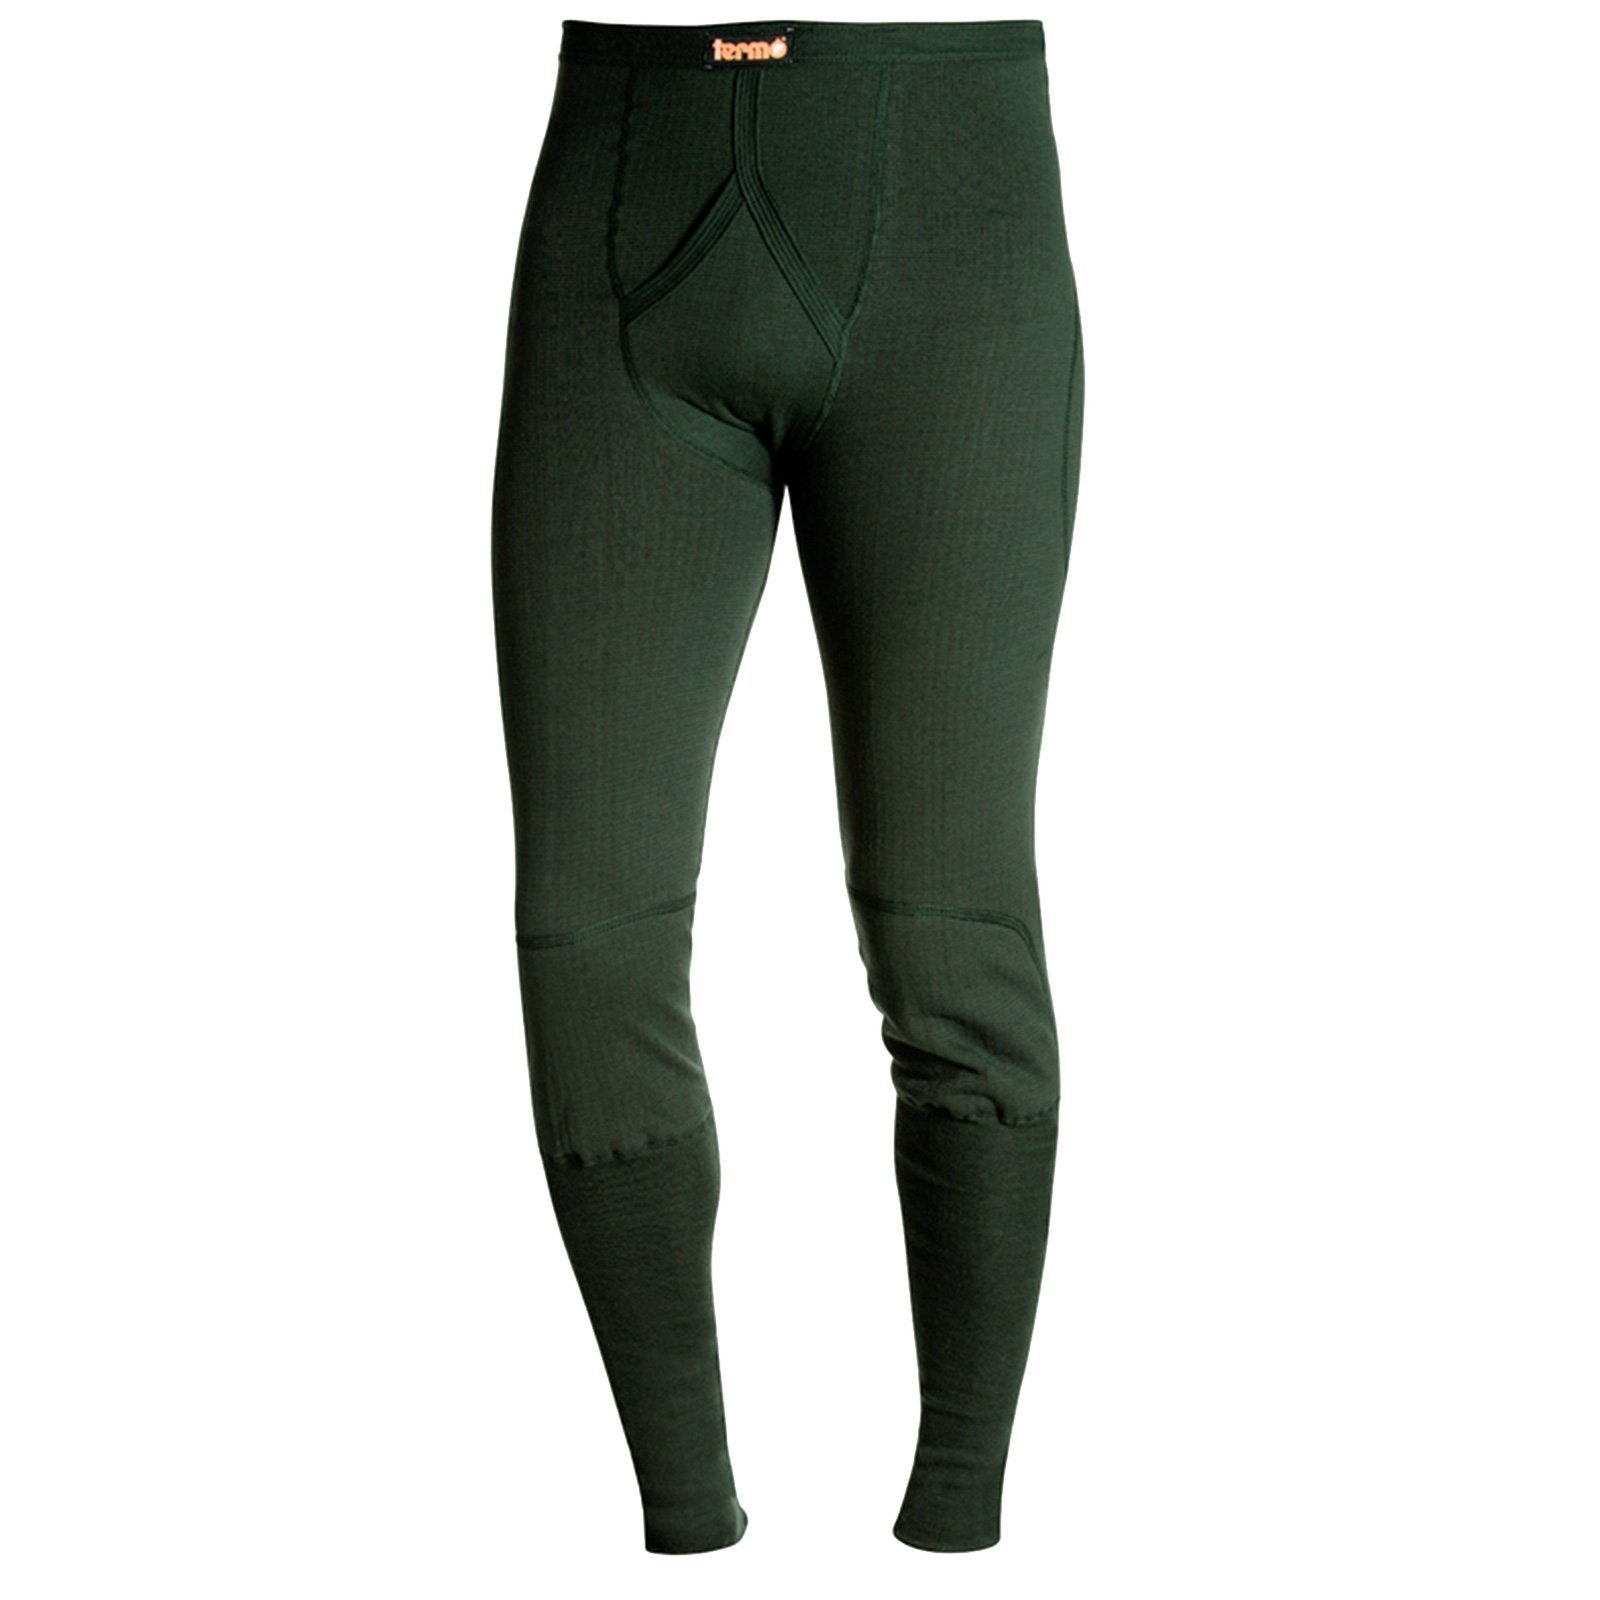 Termo Original Long Johns with Zipper | UKMCPro